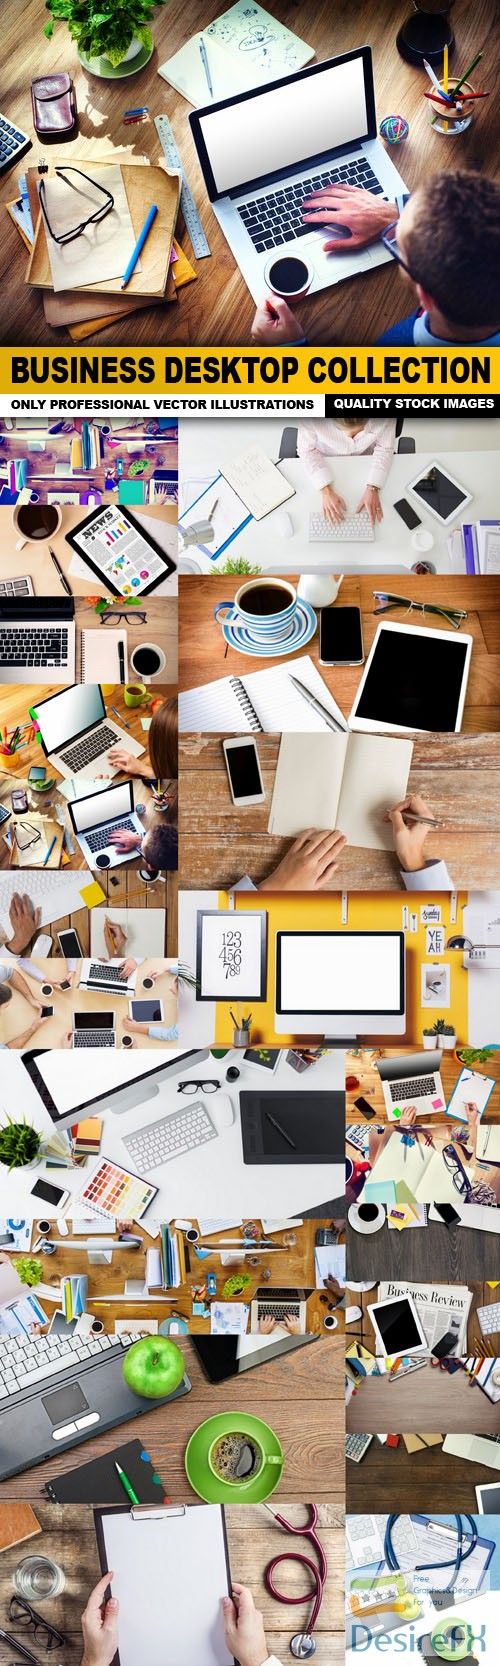 stock-images - Business Desktop Collection - 25 HQ Images